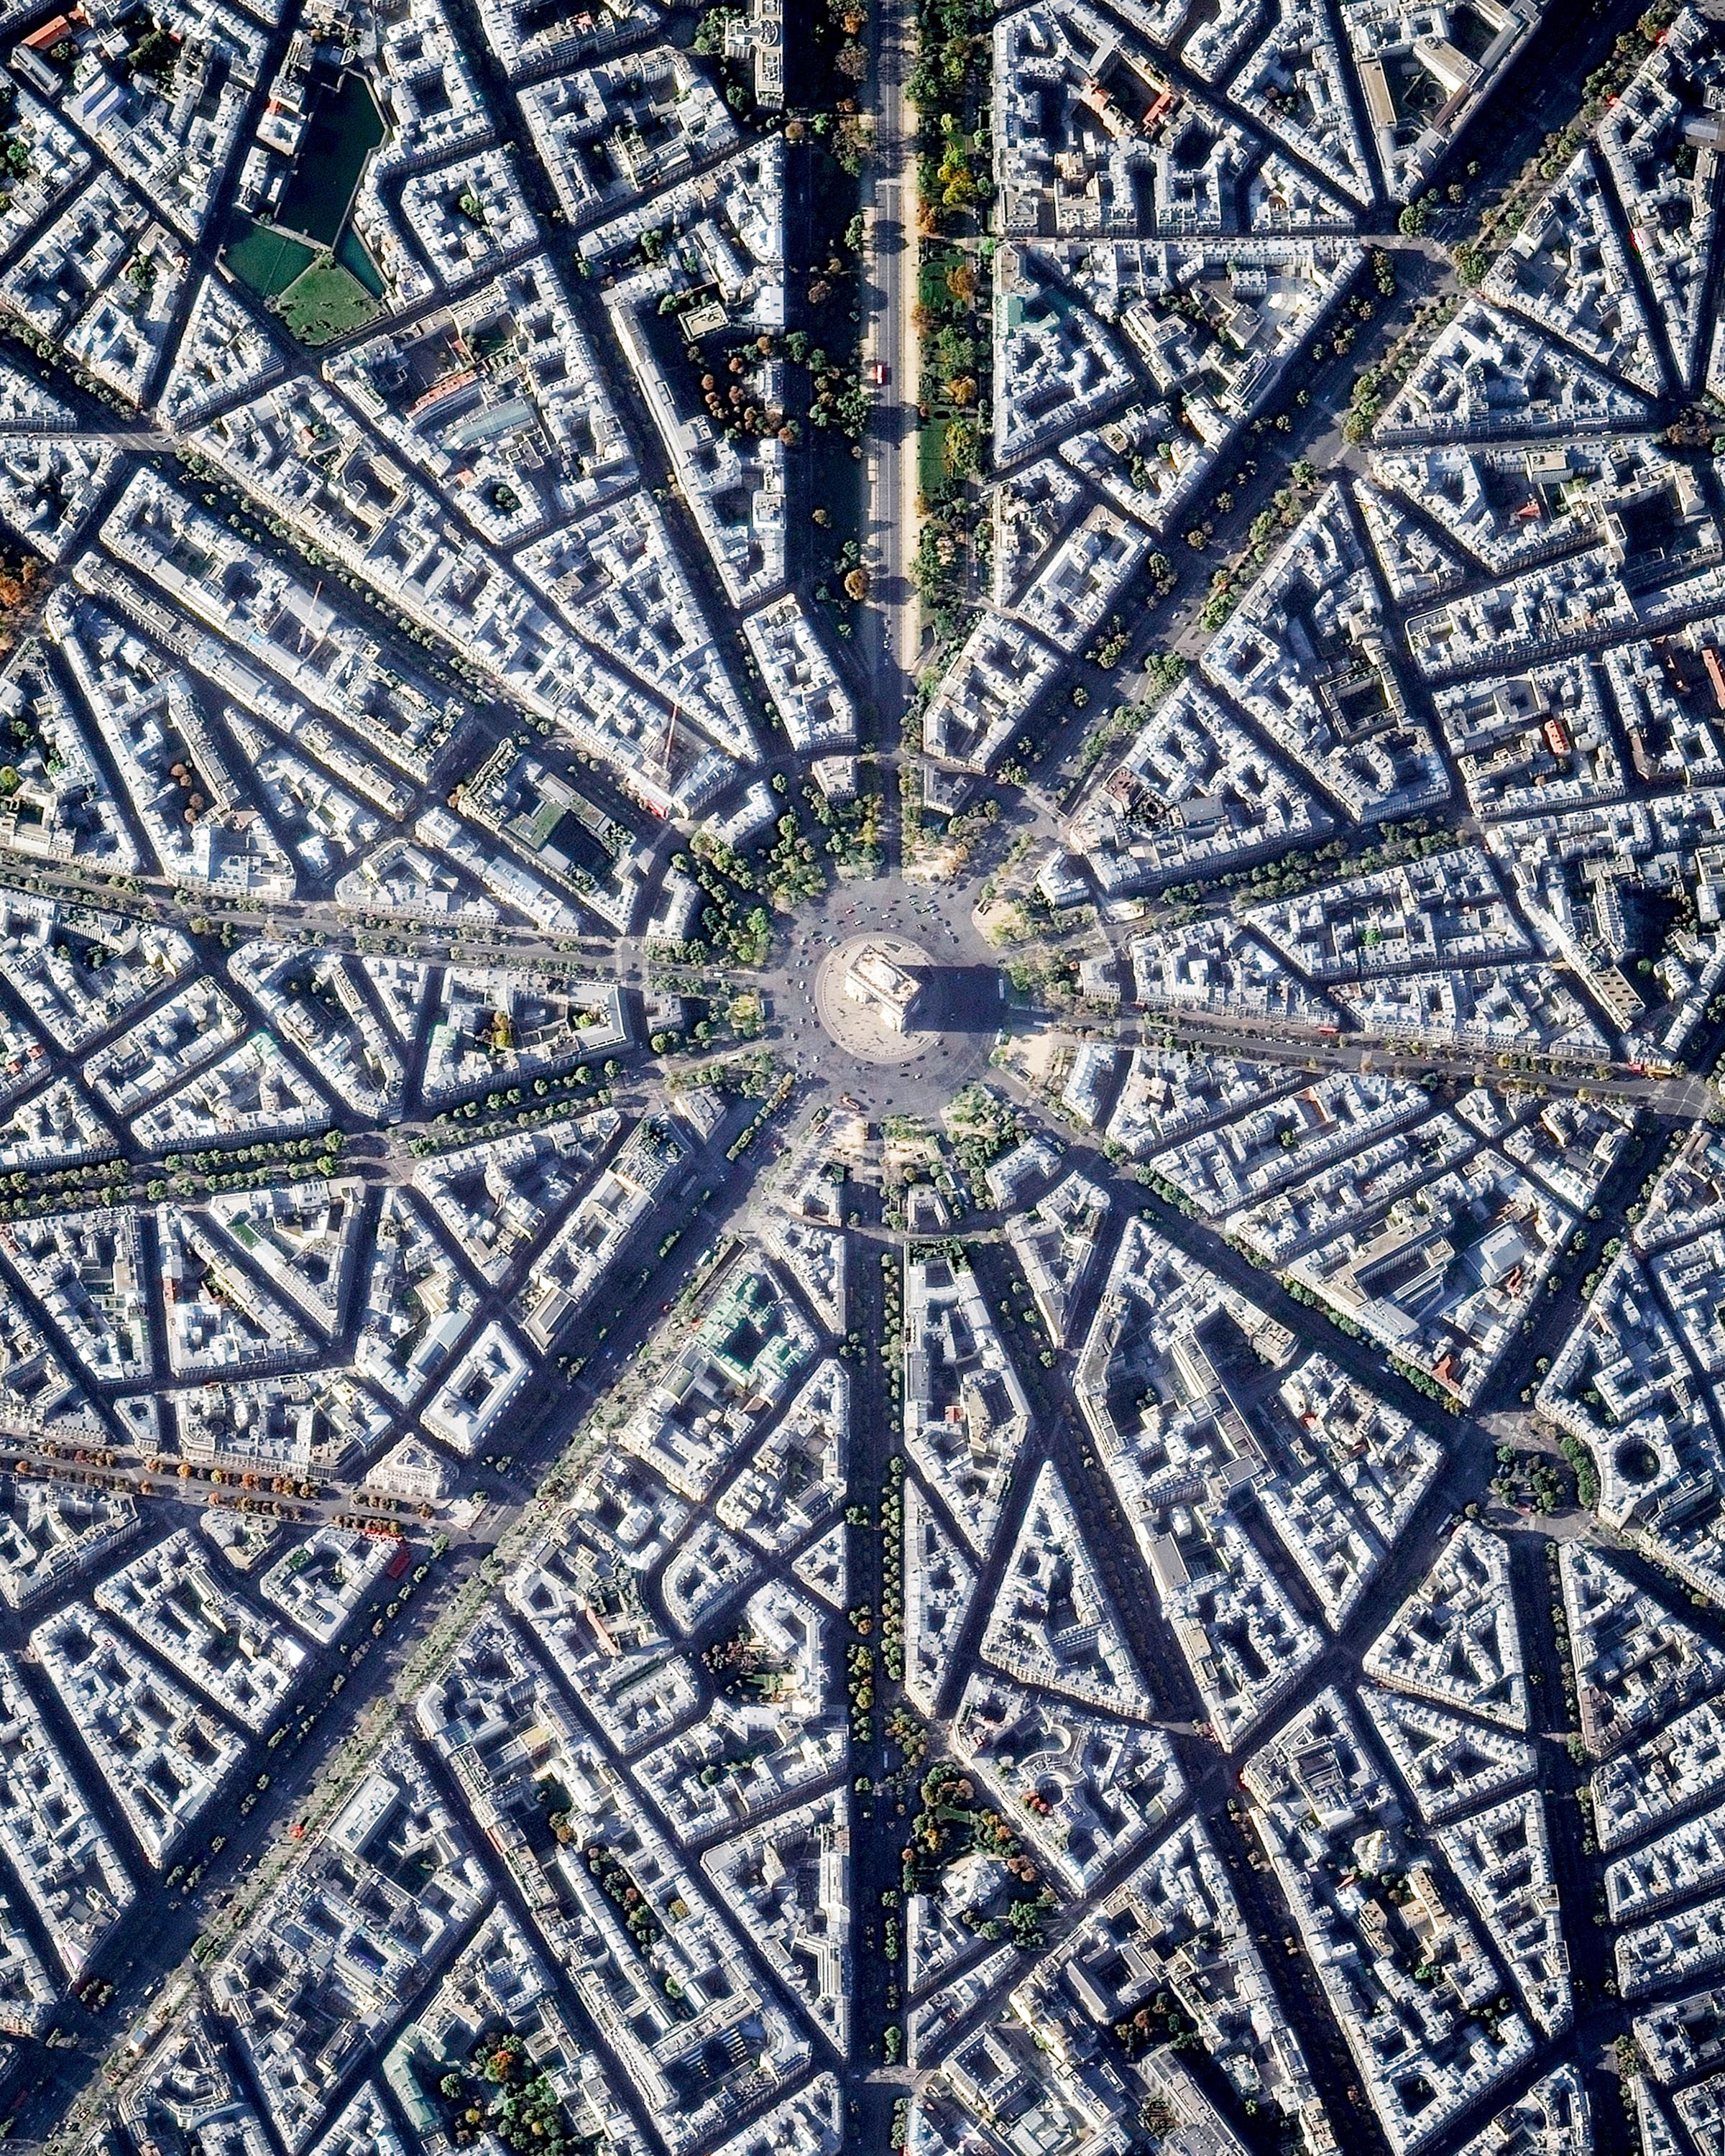 """The Arc de Triomphe is located at the center of 12 radiating avenues in Paris, France. Yesterday, millions took to these streets to celebrate France's second FIFA World Cup victory (with a 4-2 final win over Croatia). Today, players and coaches will parade up the Champs-Elysees avenue, which passes diagonally through this Overview from bottom left to upper right.  48°52'25.6""""N, 2°17'42.0""""E  Source imagery: DigitalGlobe"""